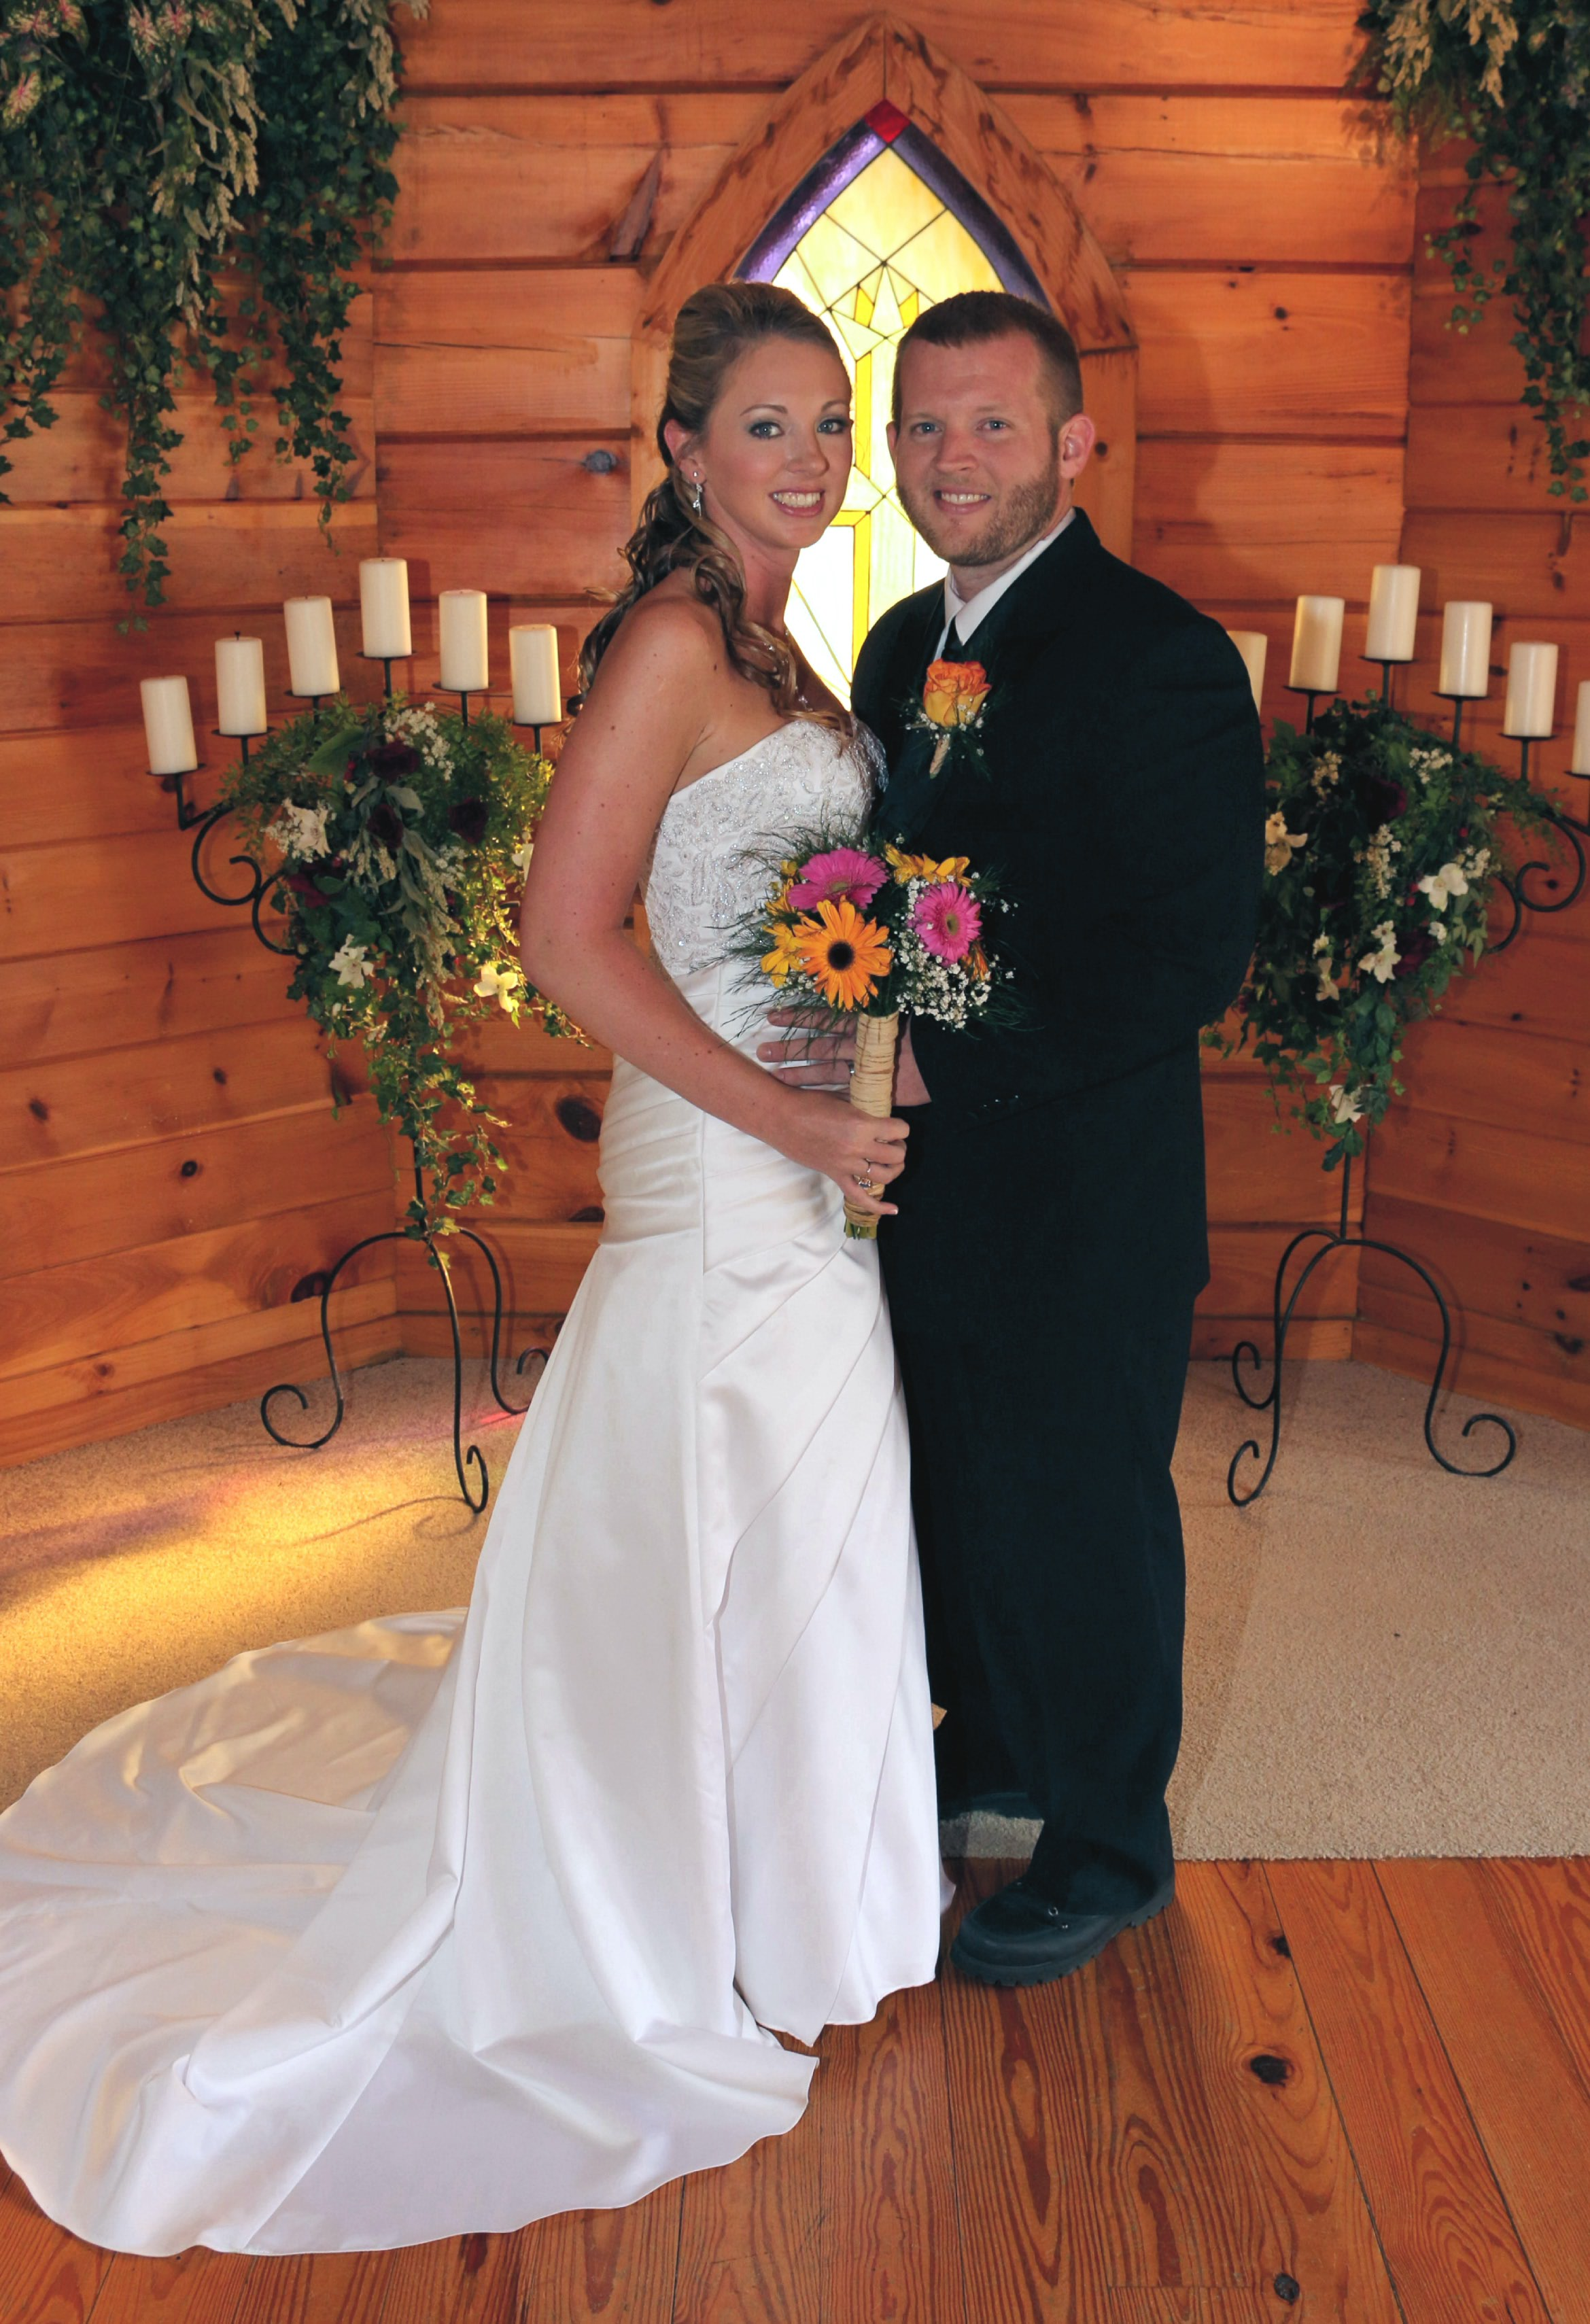 How Much Does It Cost To Get Married In The Smokies?